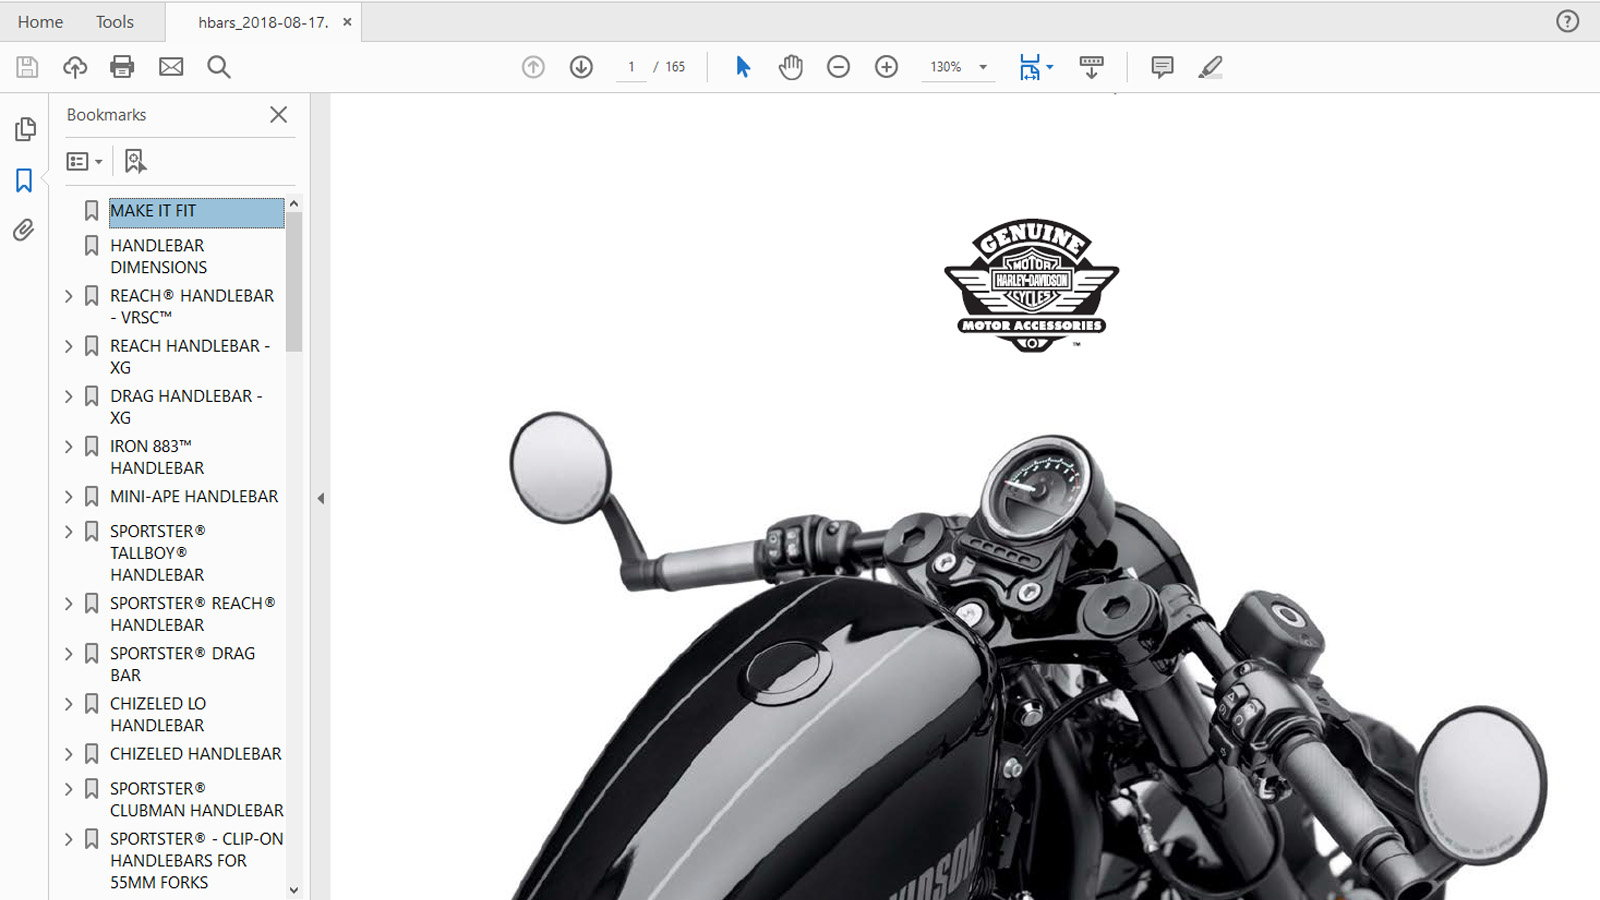 Online DIY Resource: H-D Service Information Portal | Hdforums